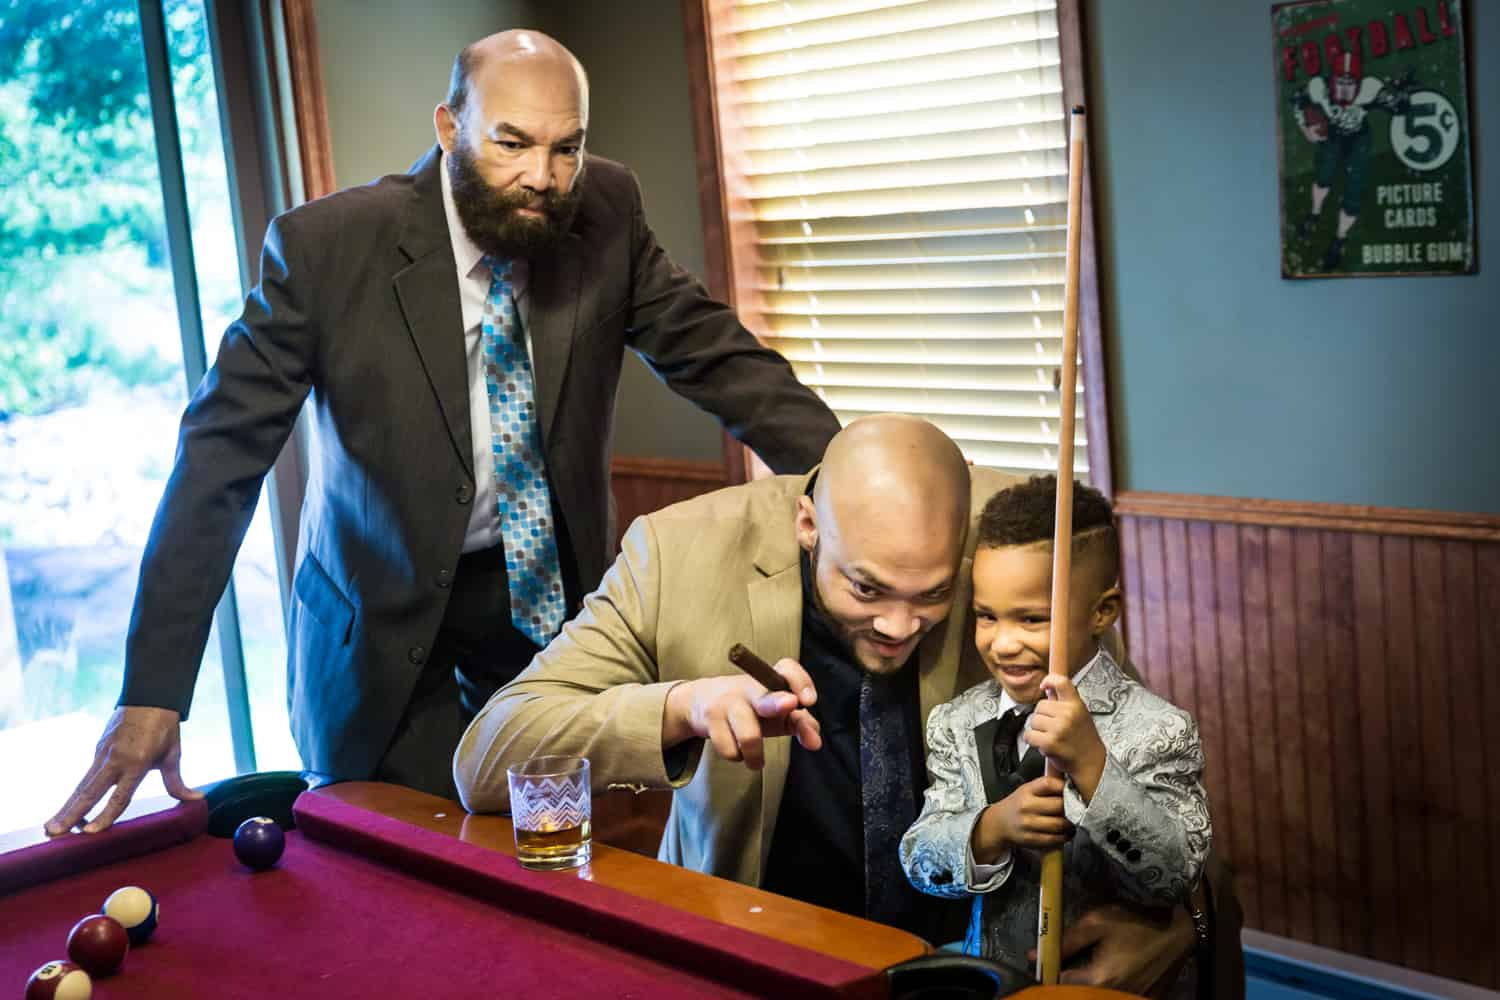 Two male family members helping little boy play pool during a family reunion portrait